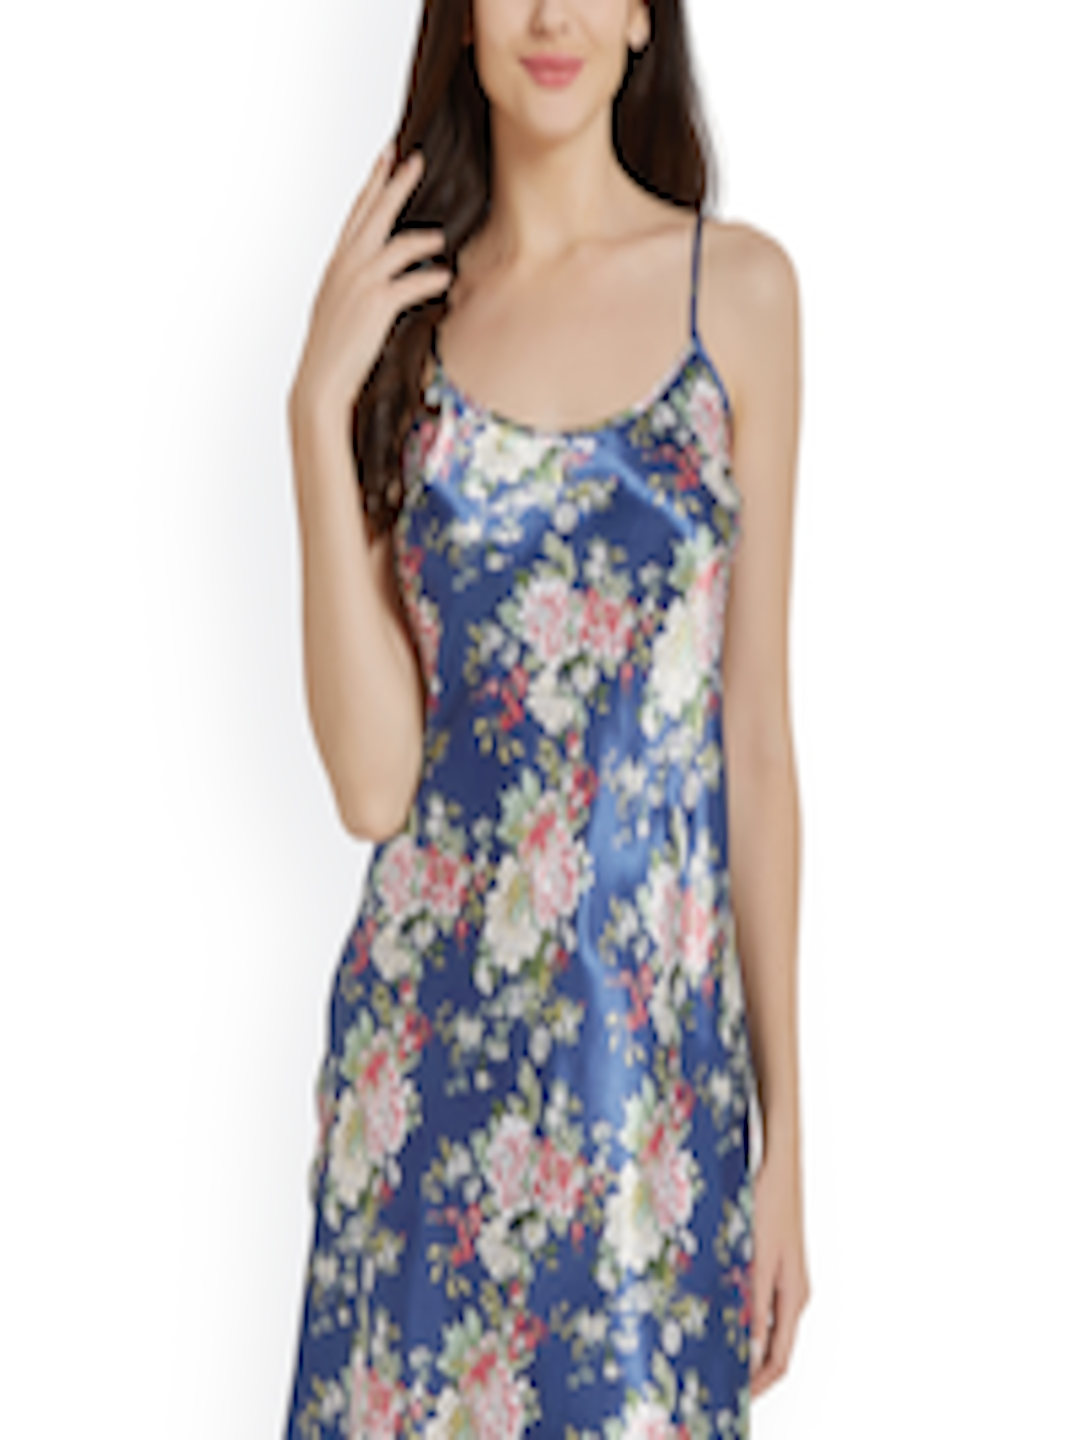 463e713f374 Buy Blush By PrettySecrets Blue Floral Print Chemise Nightdress  PS0717SCSE20 - Nightdress for Women 2081947